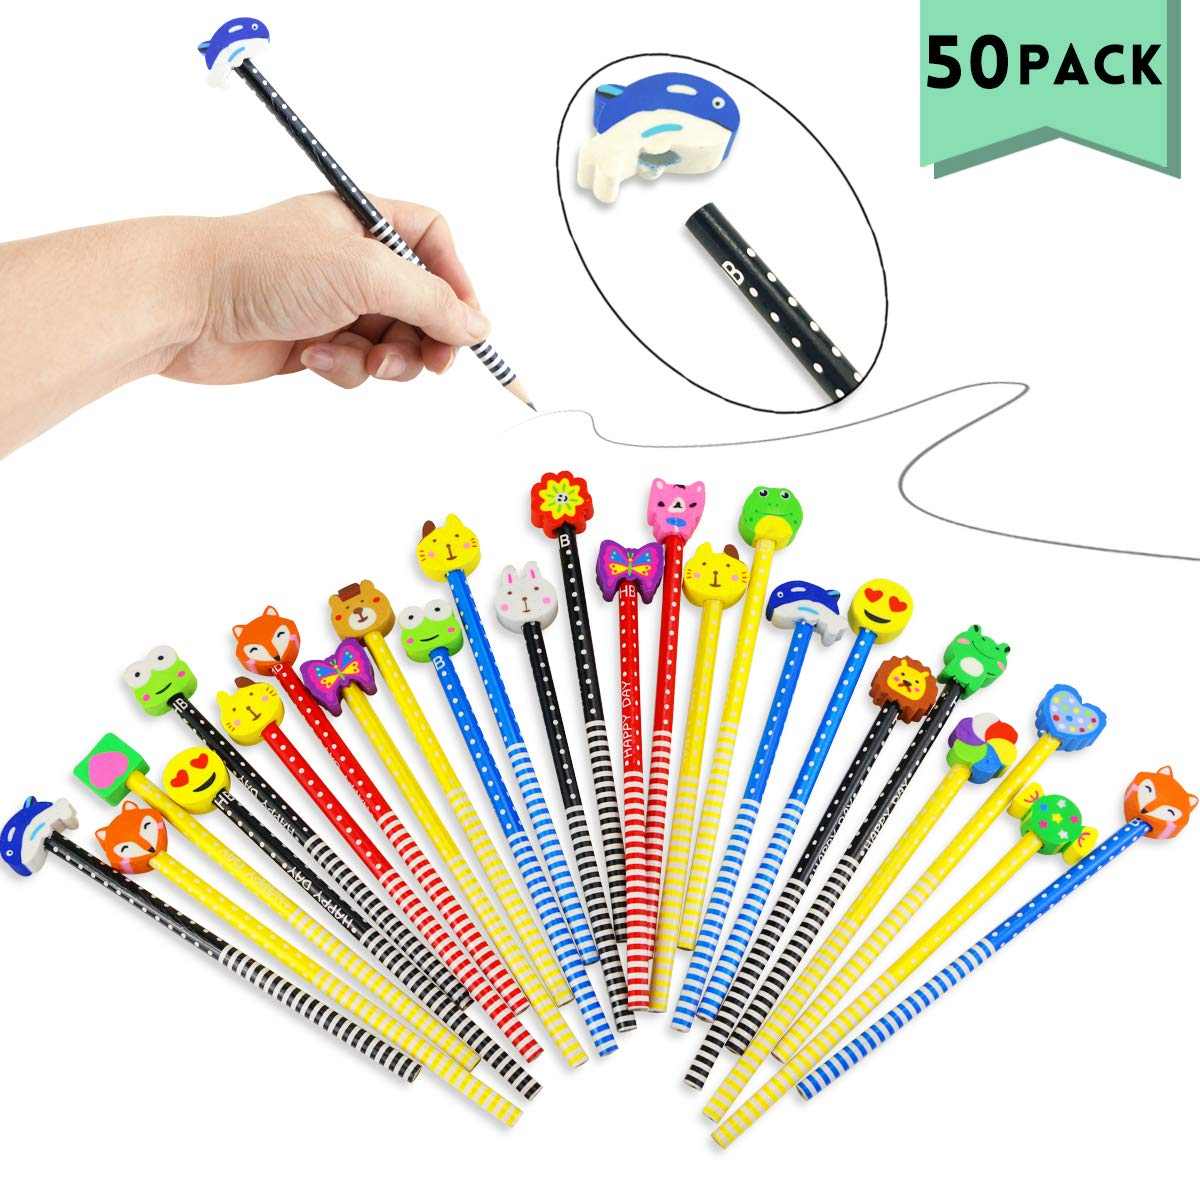 Etmact 50 Pack Assorted Colorful Cartoon Animal Pencil With Eraser Novelty Dot & Stripe Giant Eraser Topper Kids Pencils by Etmact